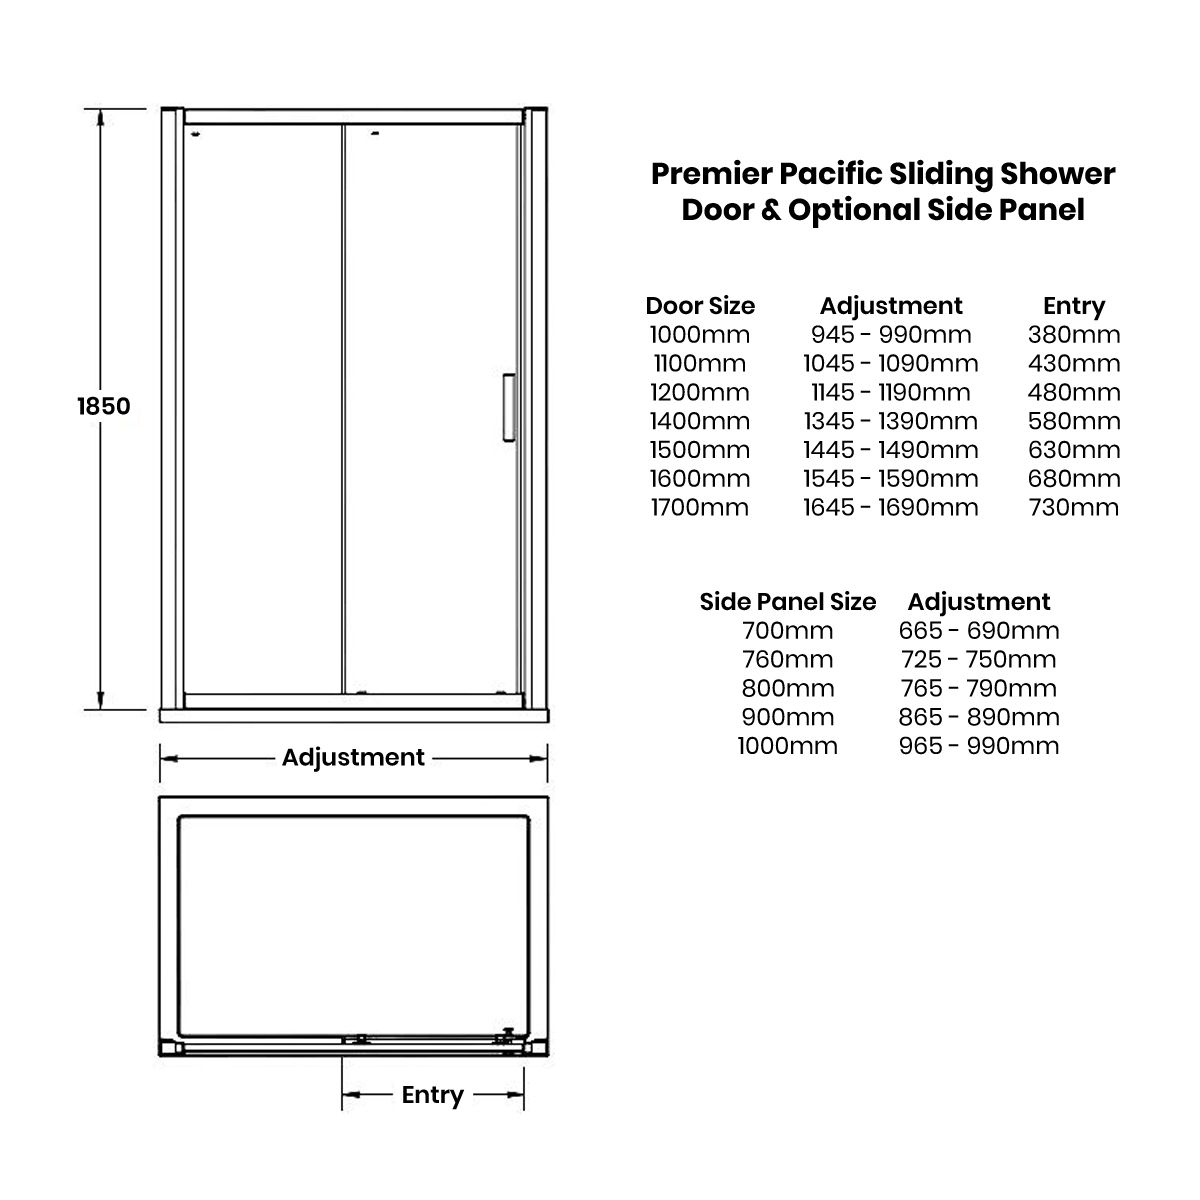 Premier Pacific Sliding Shower Enclosure Dimensions